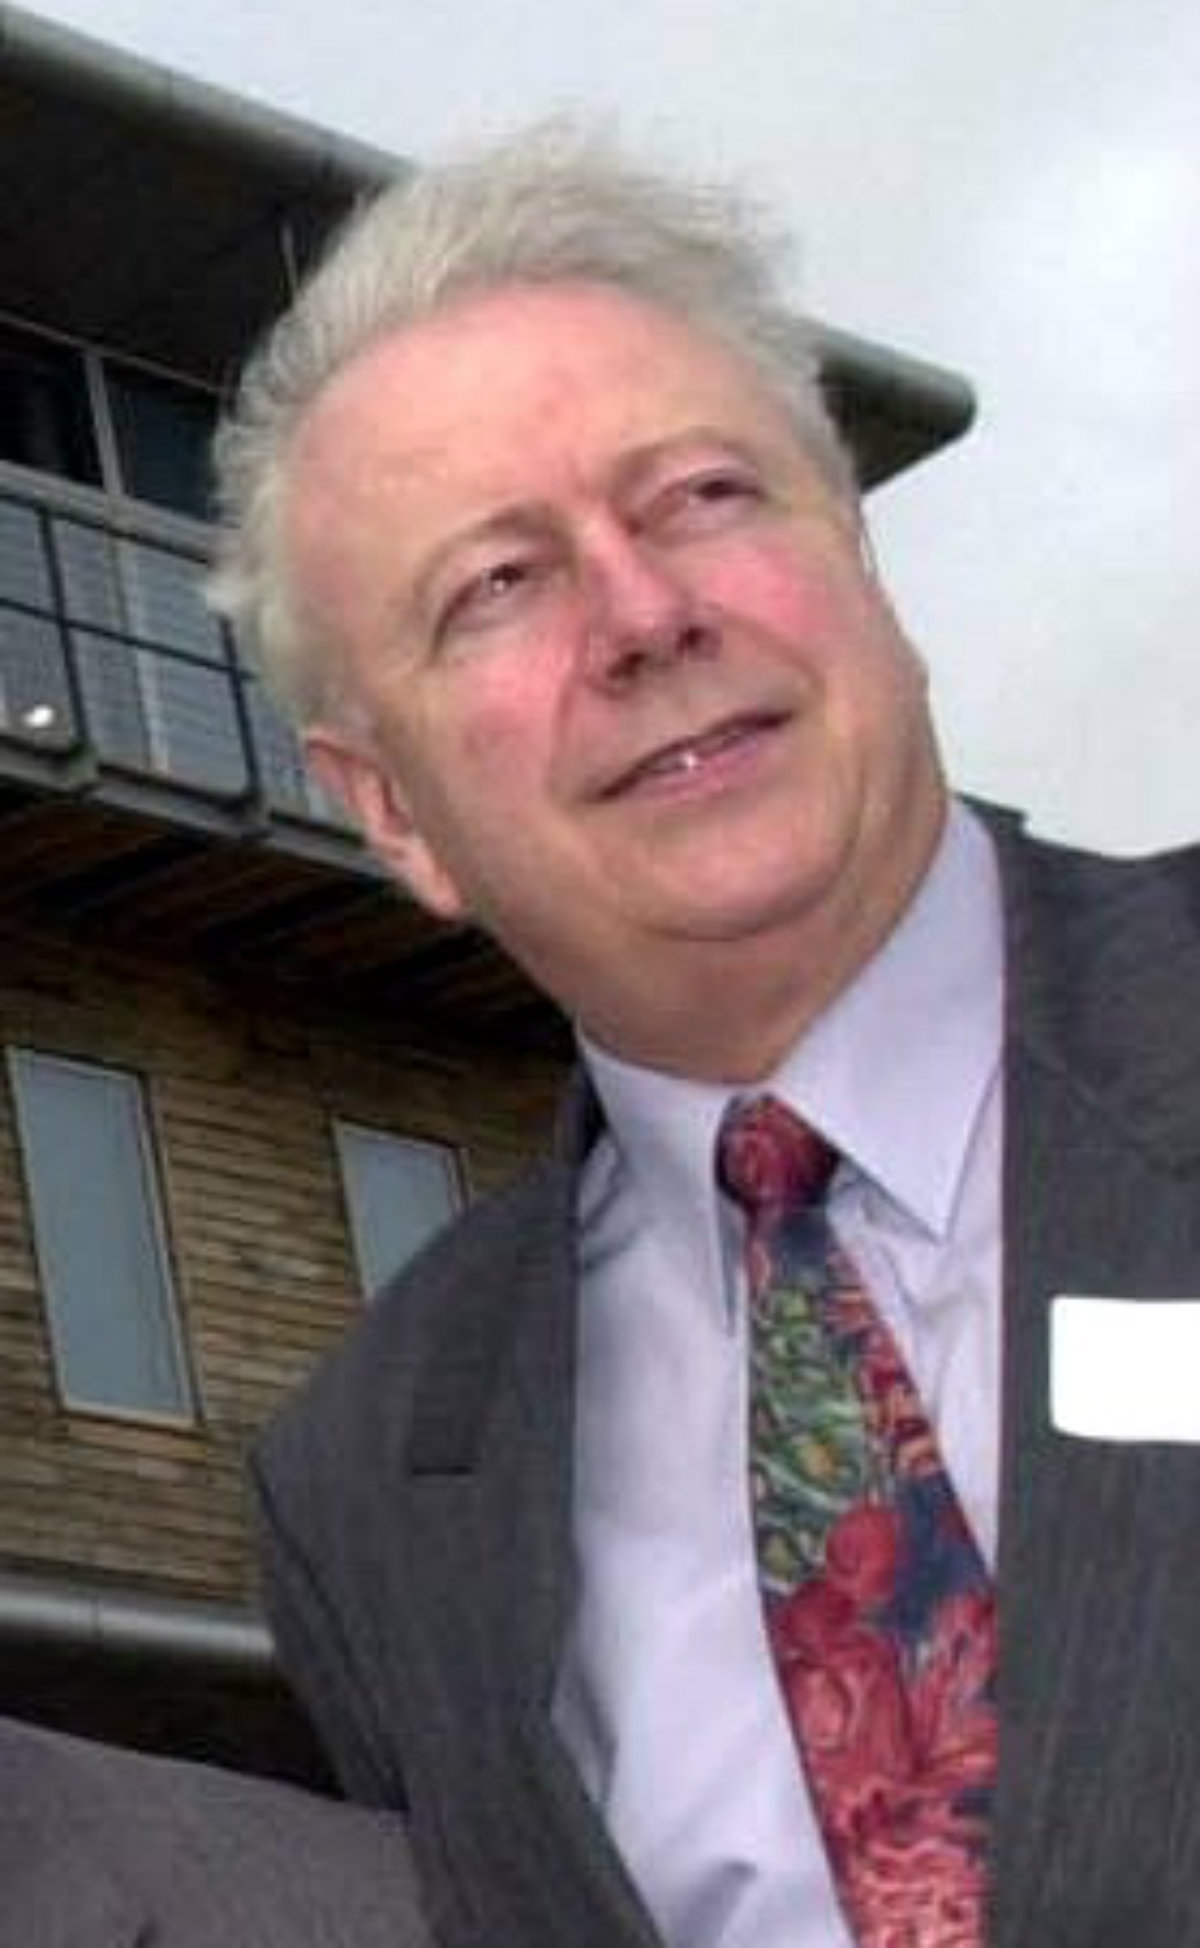 Warm tributes following death of Pembrokeshire Lottery founder Danny Fellows